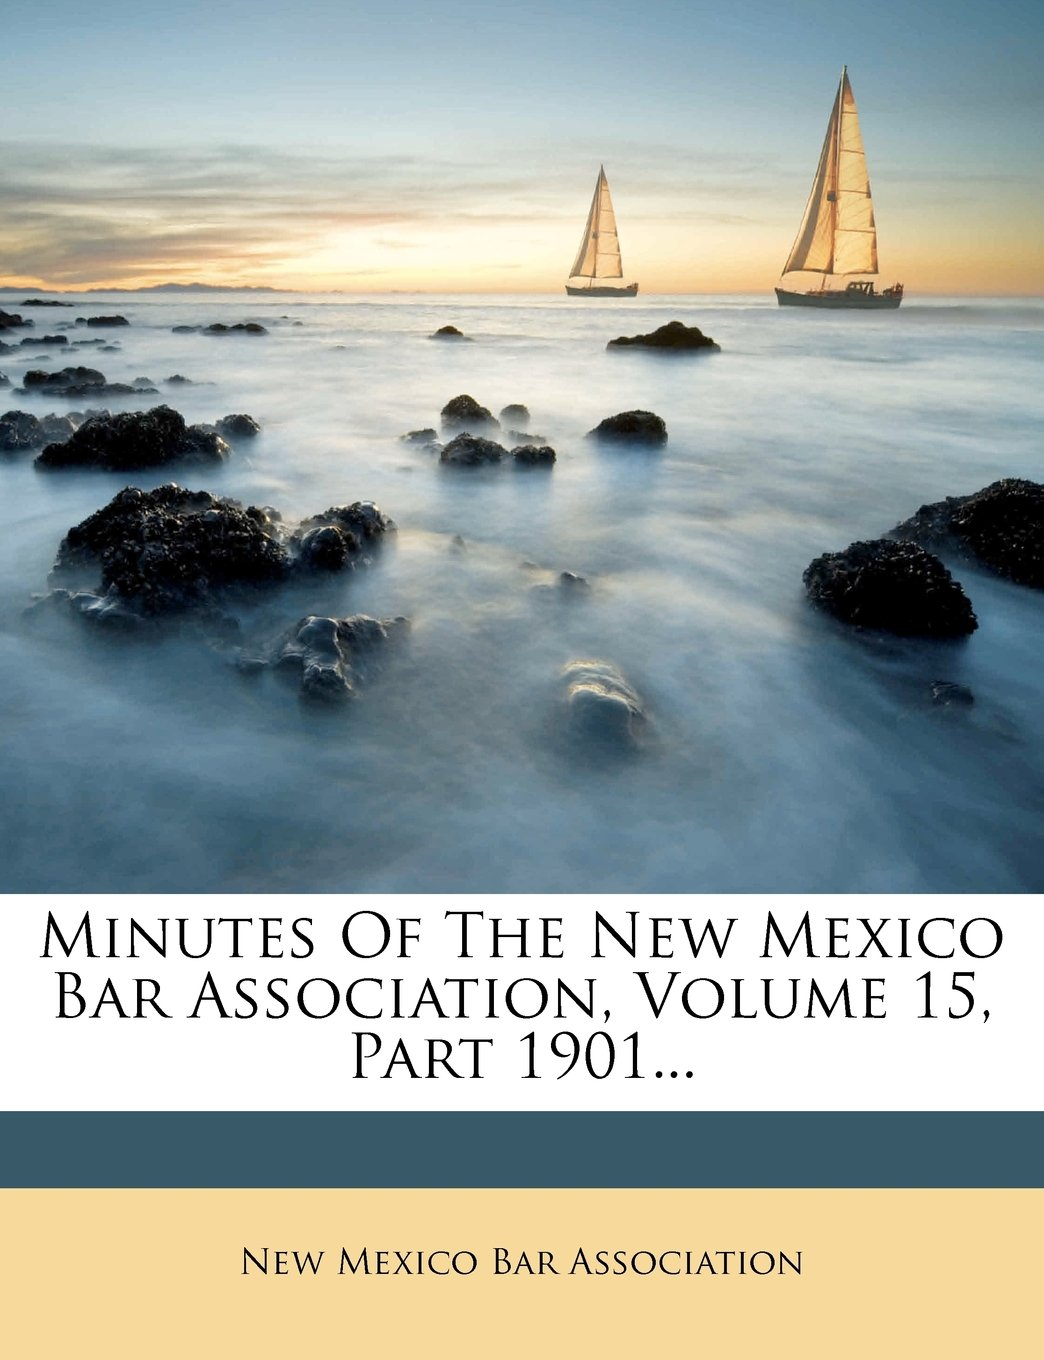 Minutes of the New Mexico Bar Association, Volume 15, Part 1901... PDF